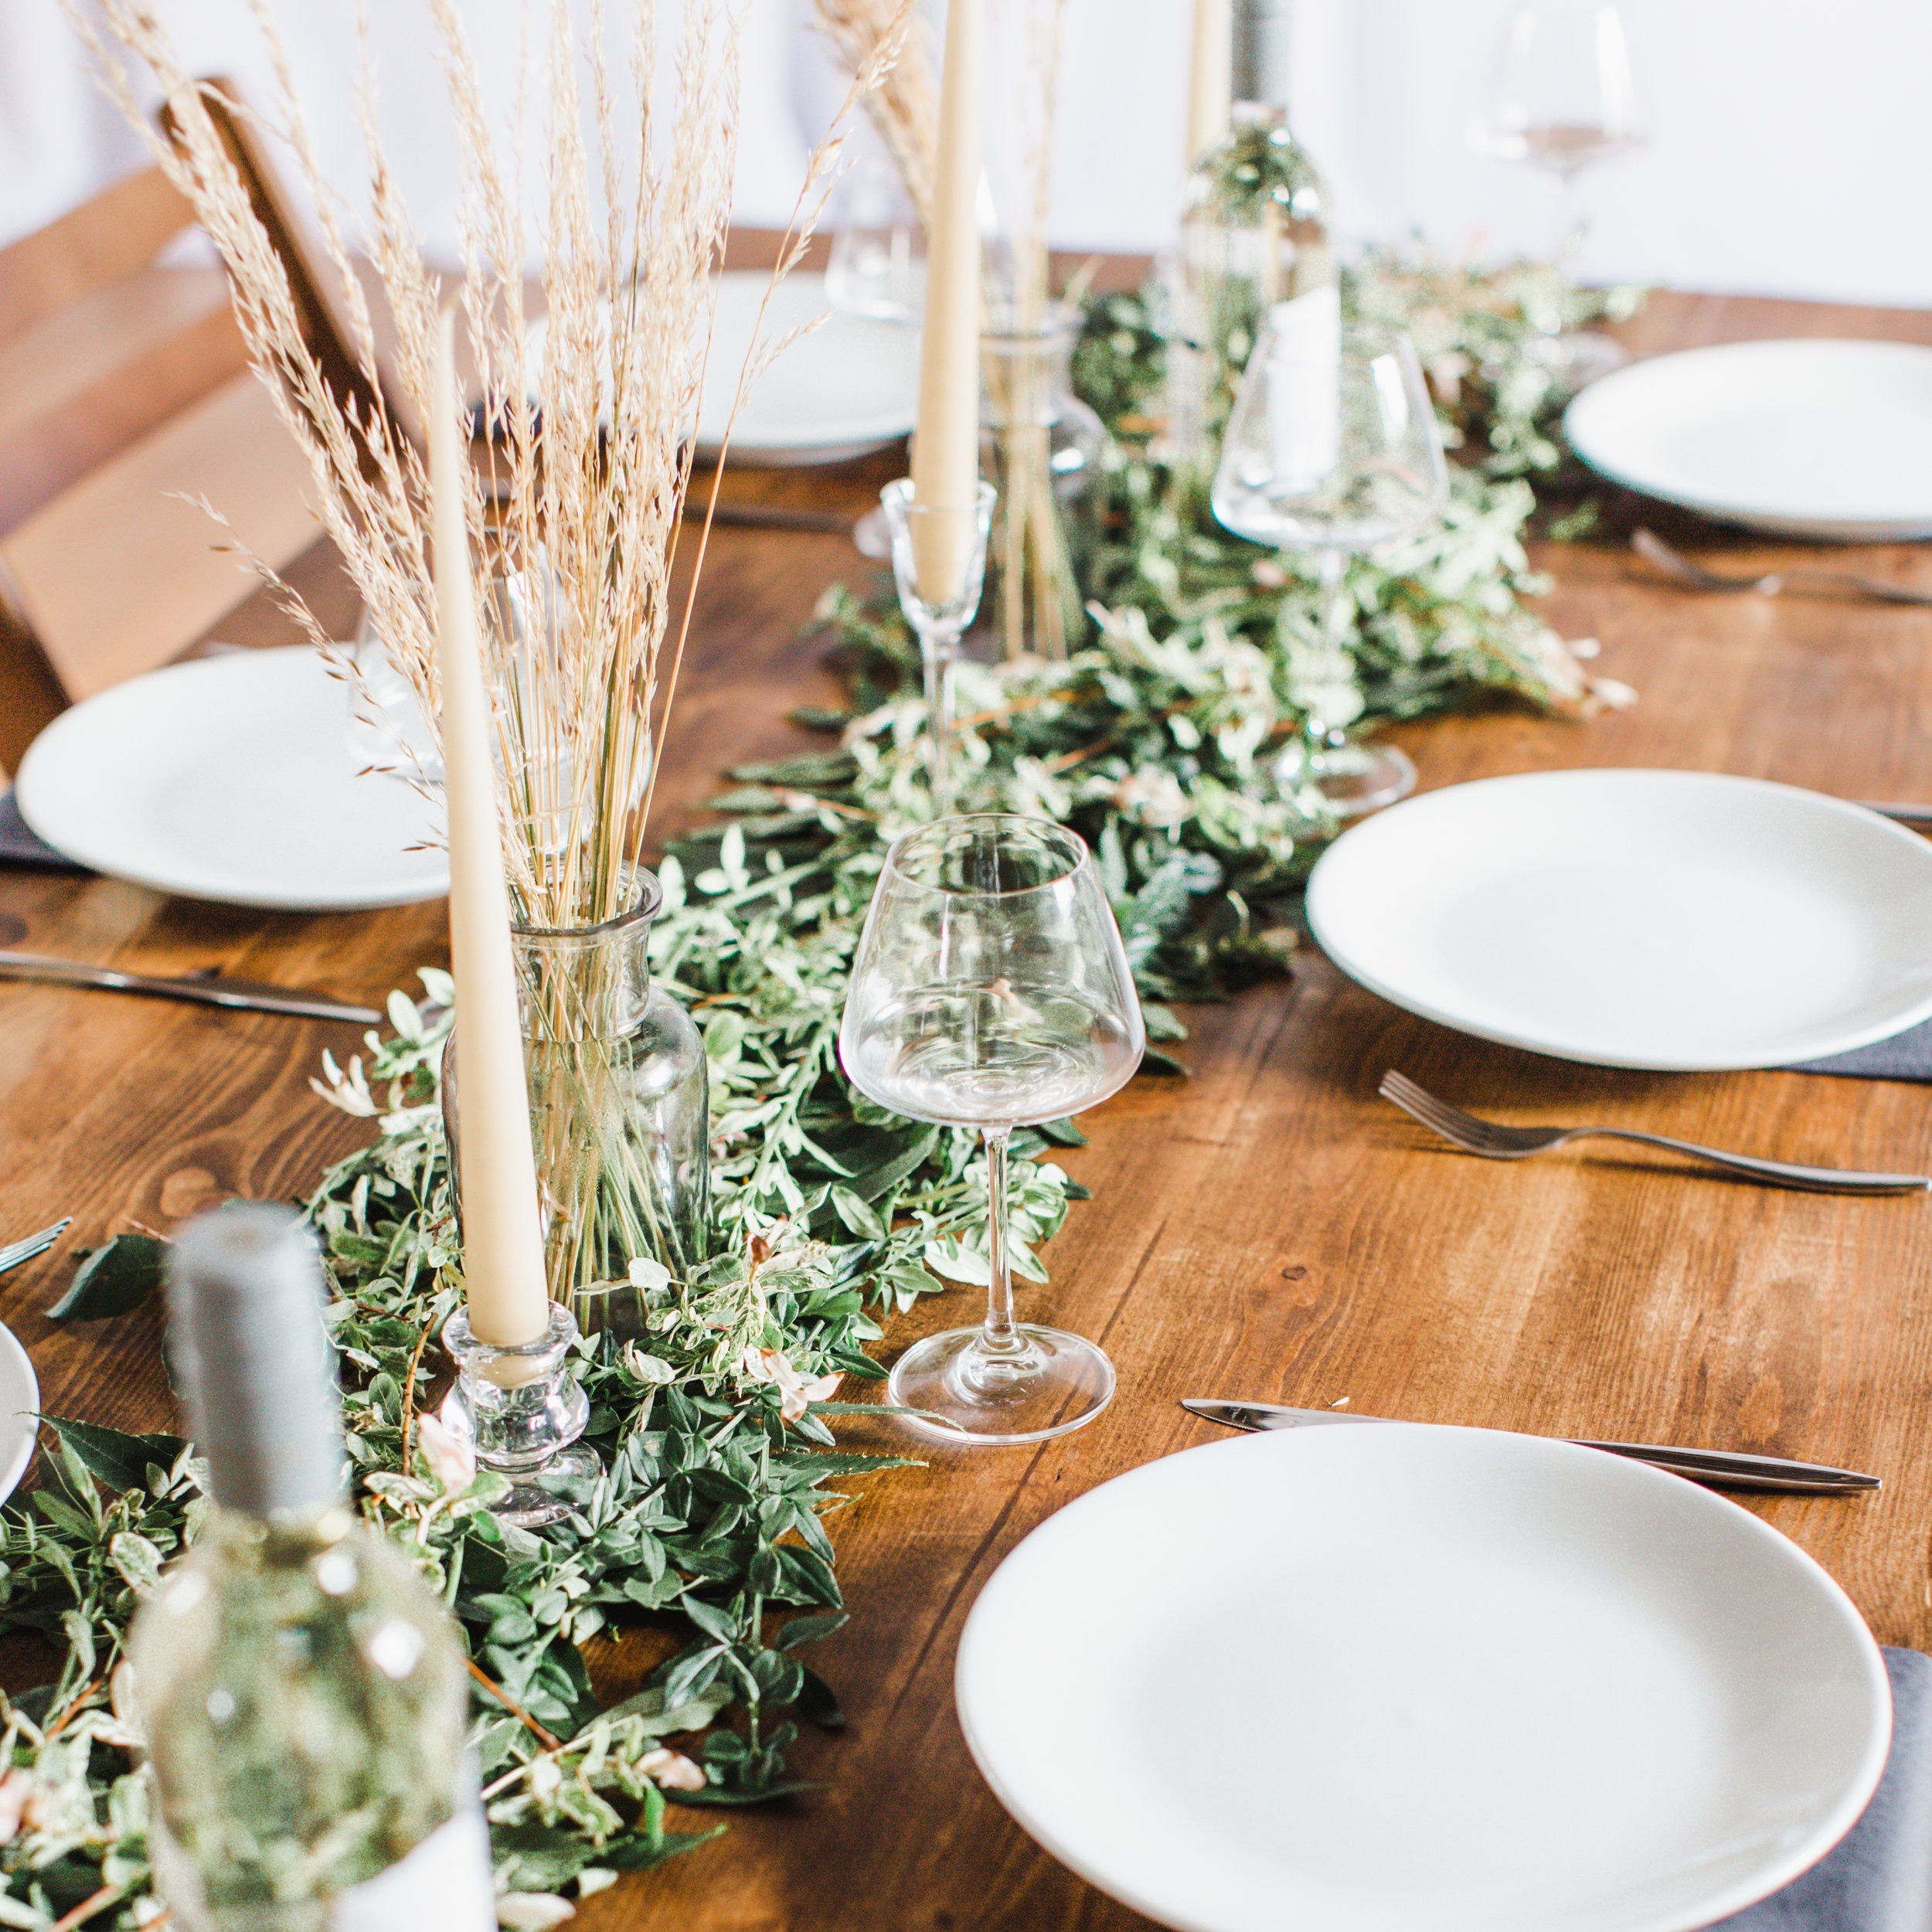 Decor Collection - We have chosen to partner with The White Company in order to supply your wedding with luxurious table decor that has been sustainably and ethically sourced. We will give you access to all of our decor so you have the freedom to create your own stunning table design with no restrictions.